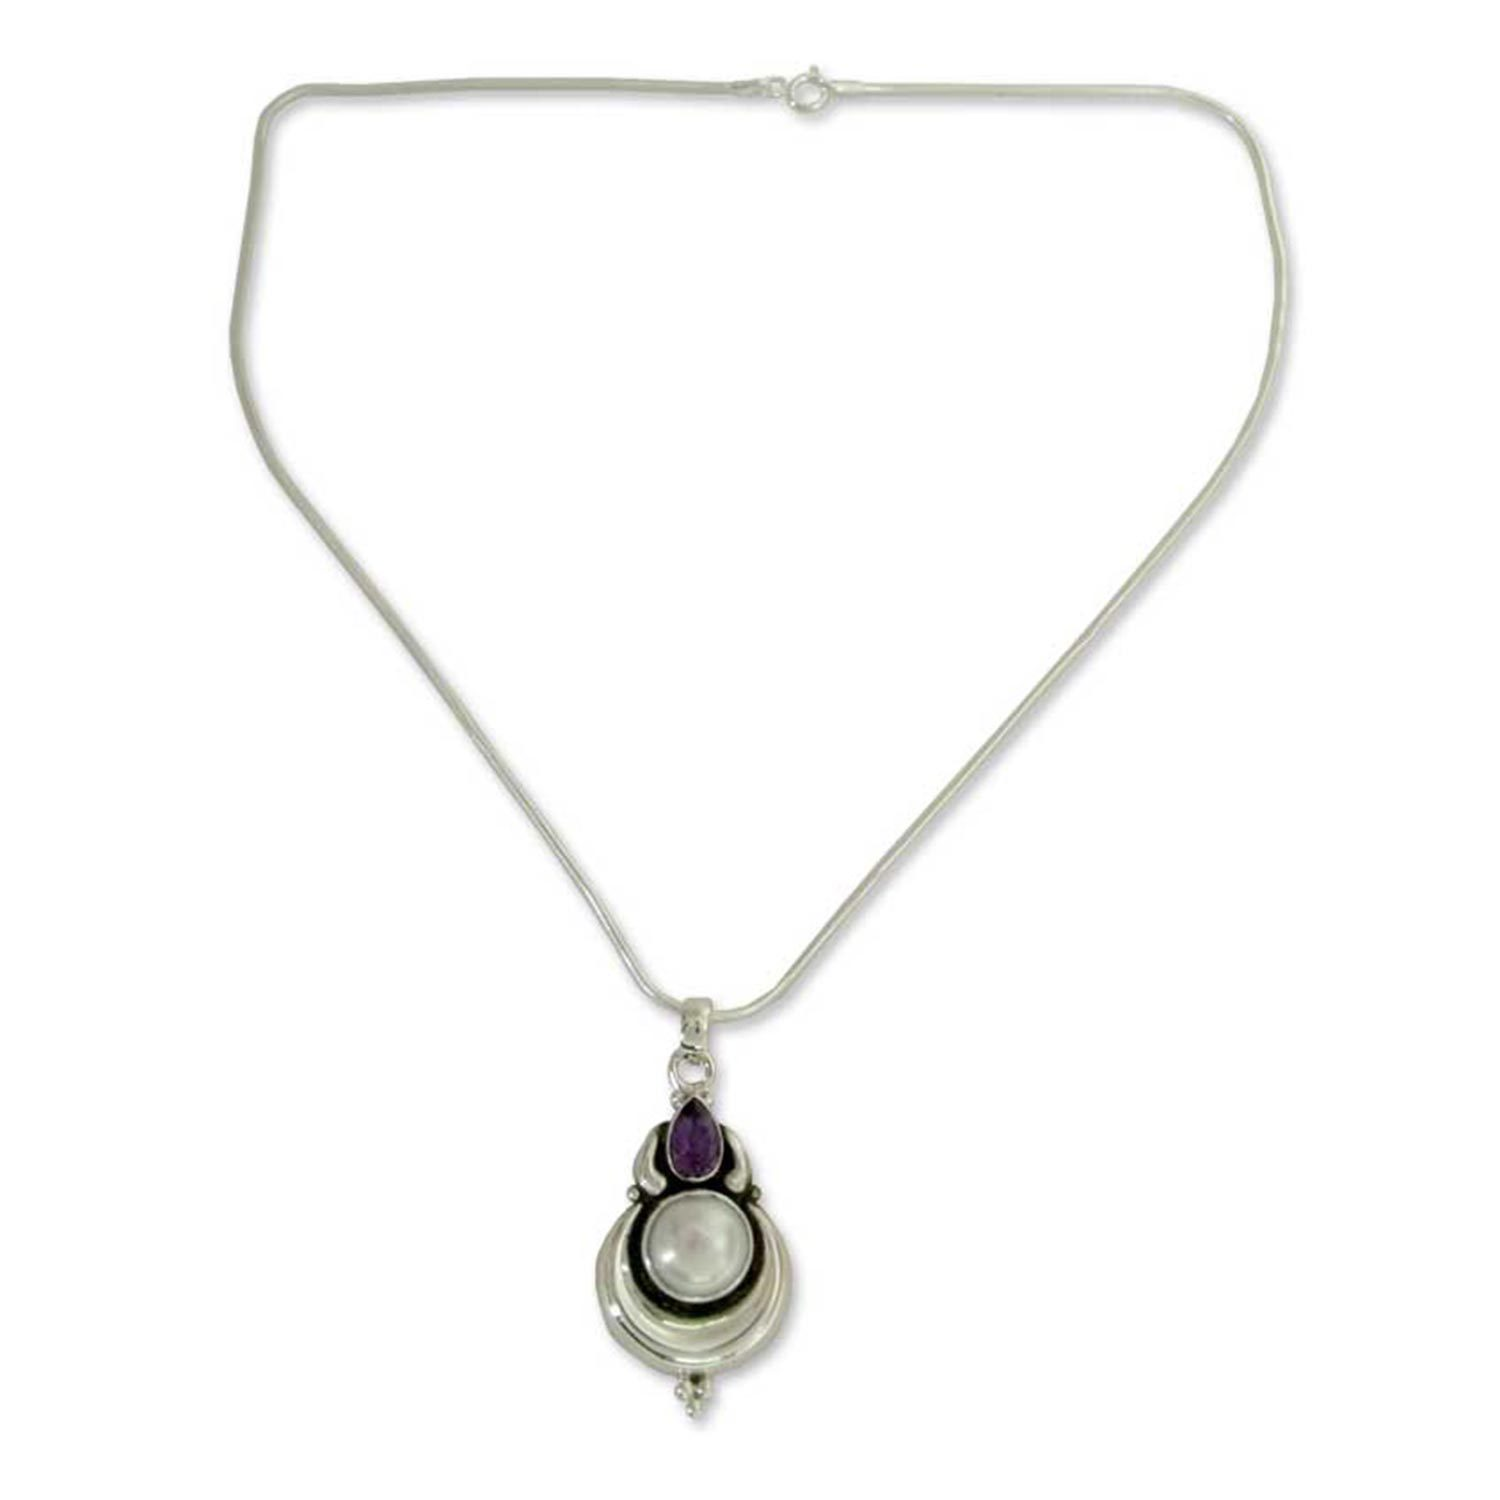 05db0fd3bd16d Handmade Sterling Silver 'Jaipur Moon' Pearl Amethyst Necklace (10 mm)  (India)